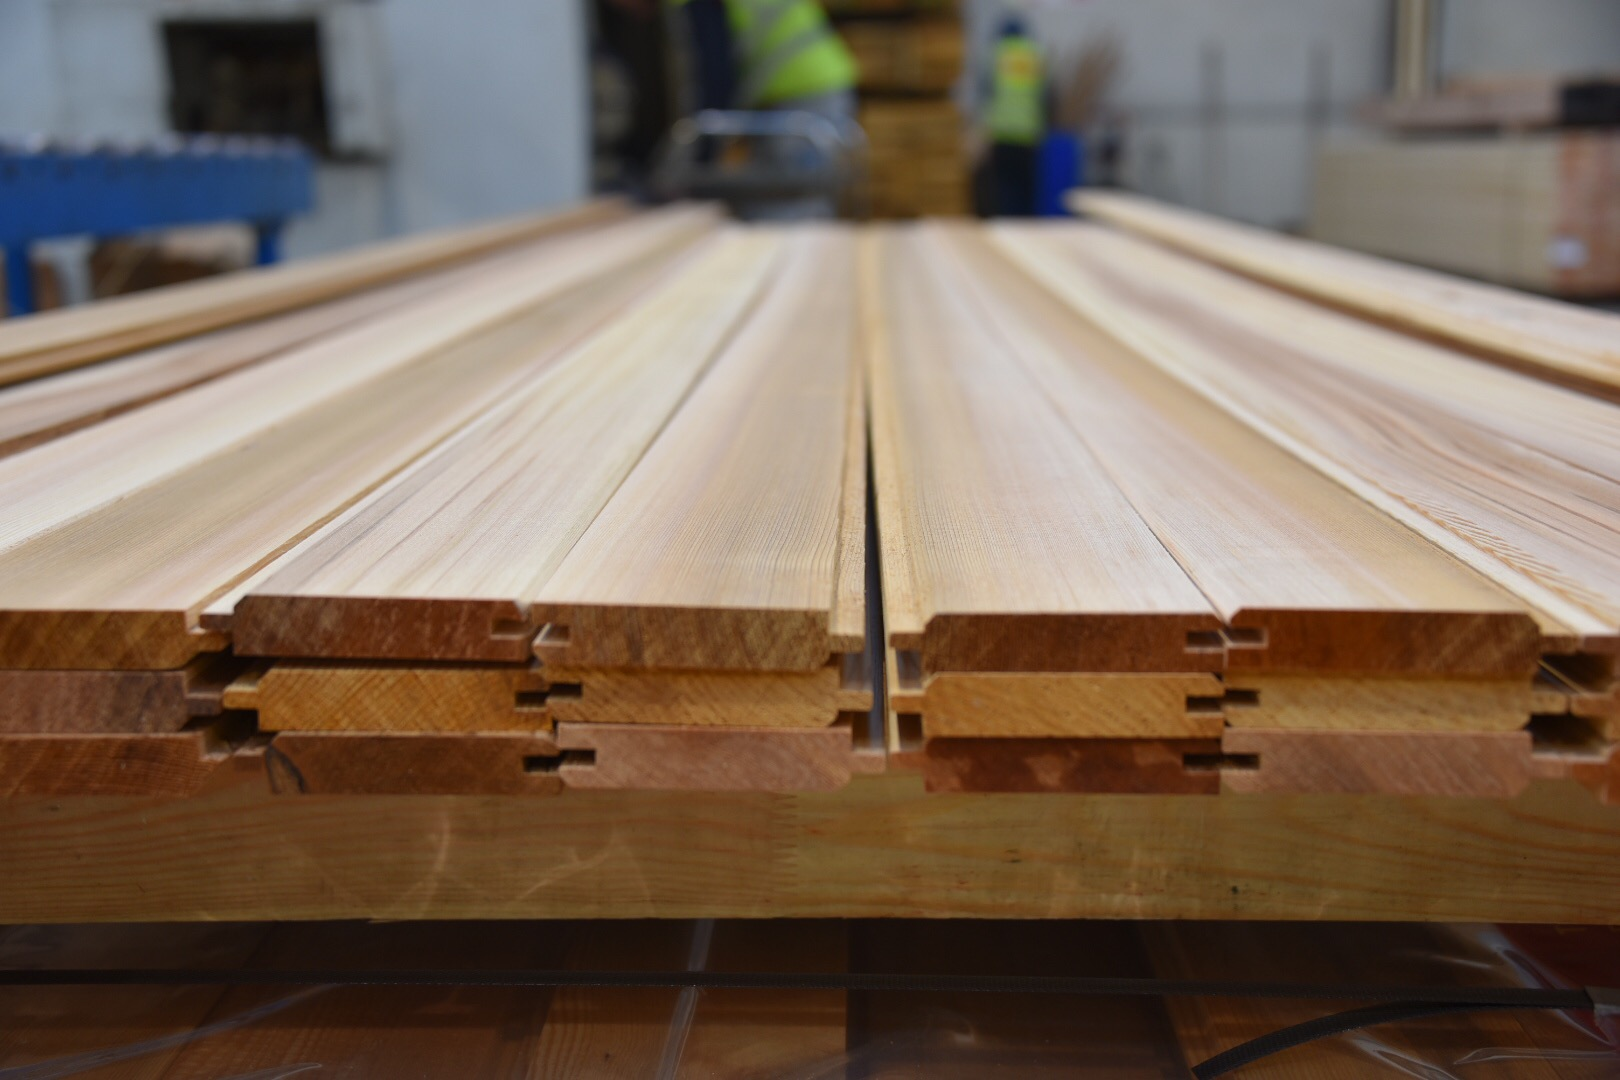 timber being cut